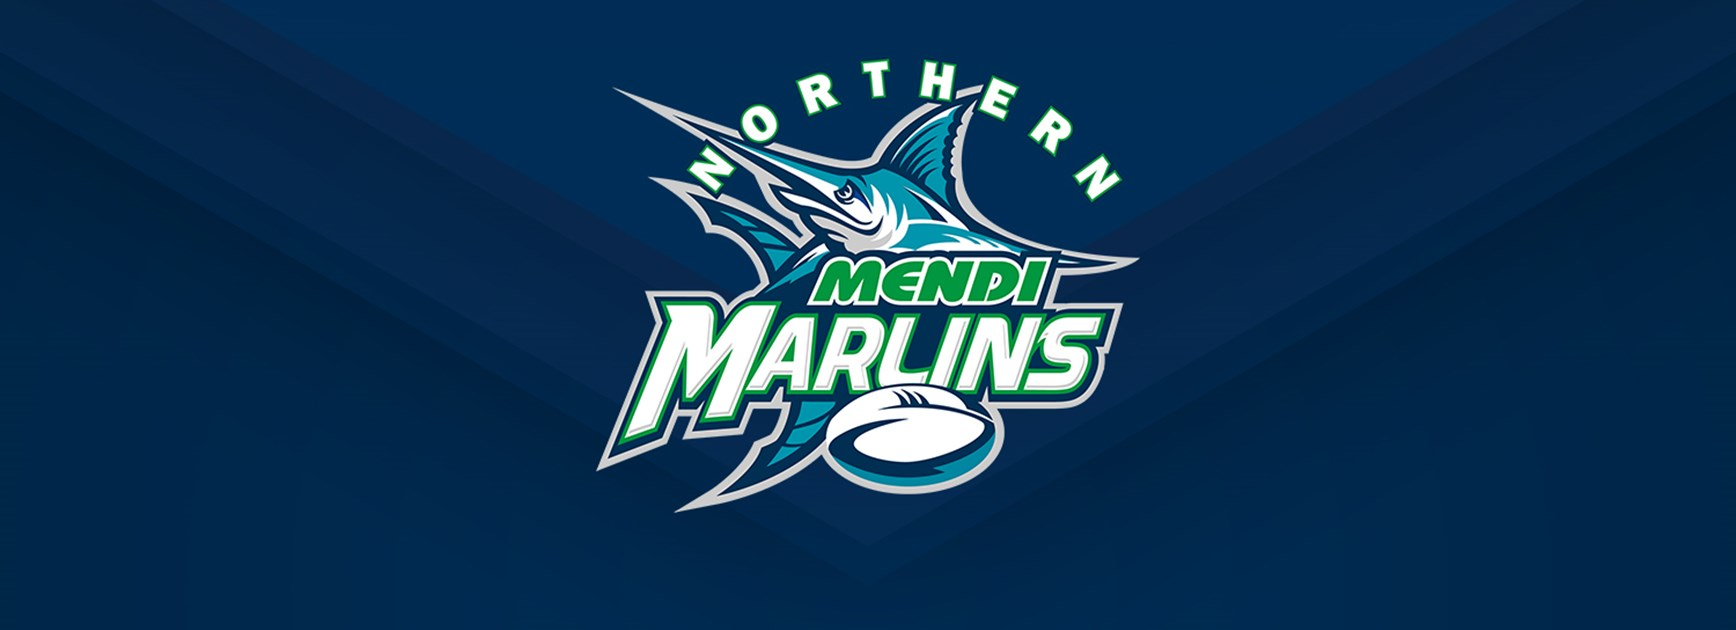 Youth and experience make up Northern Marlins men's team